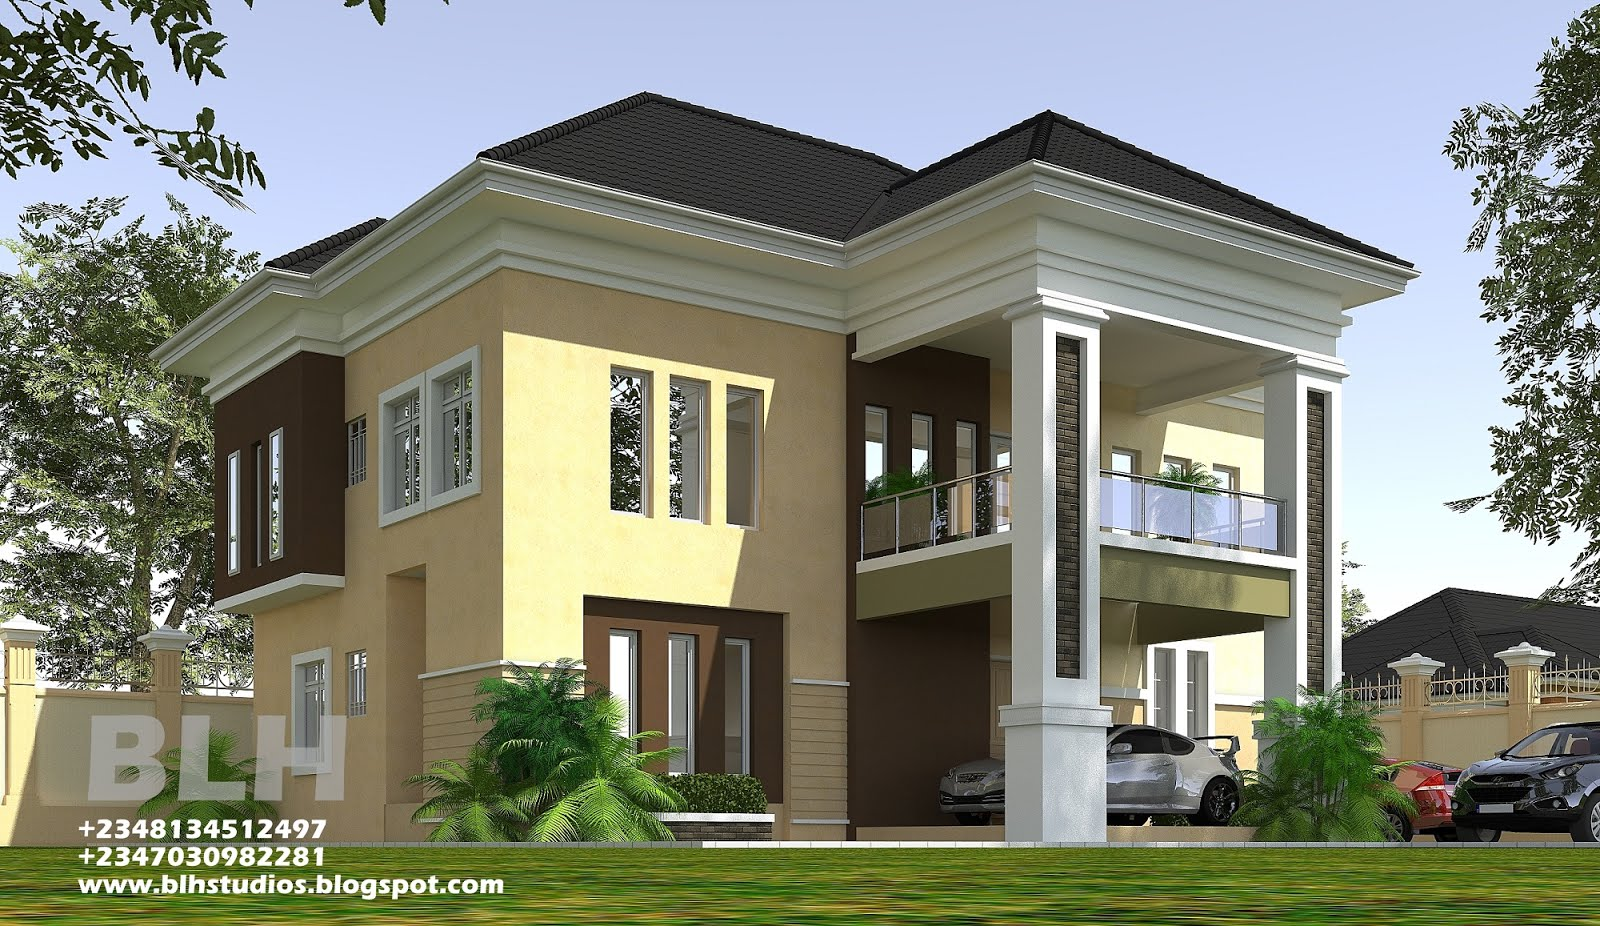 Architectural designs by blacklakehouse 2 bedroom for Architectural designs for bungalows